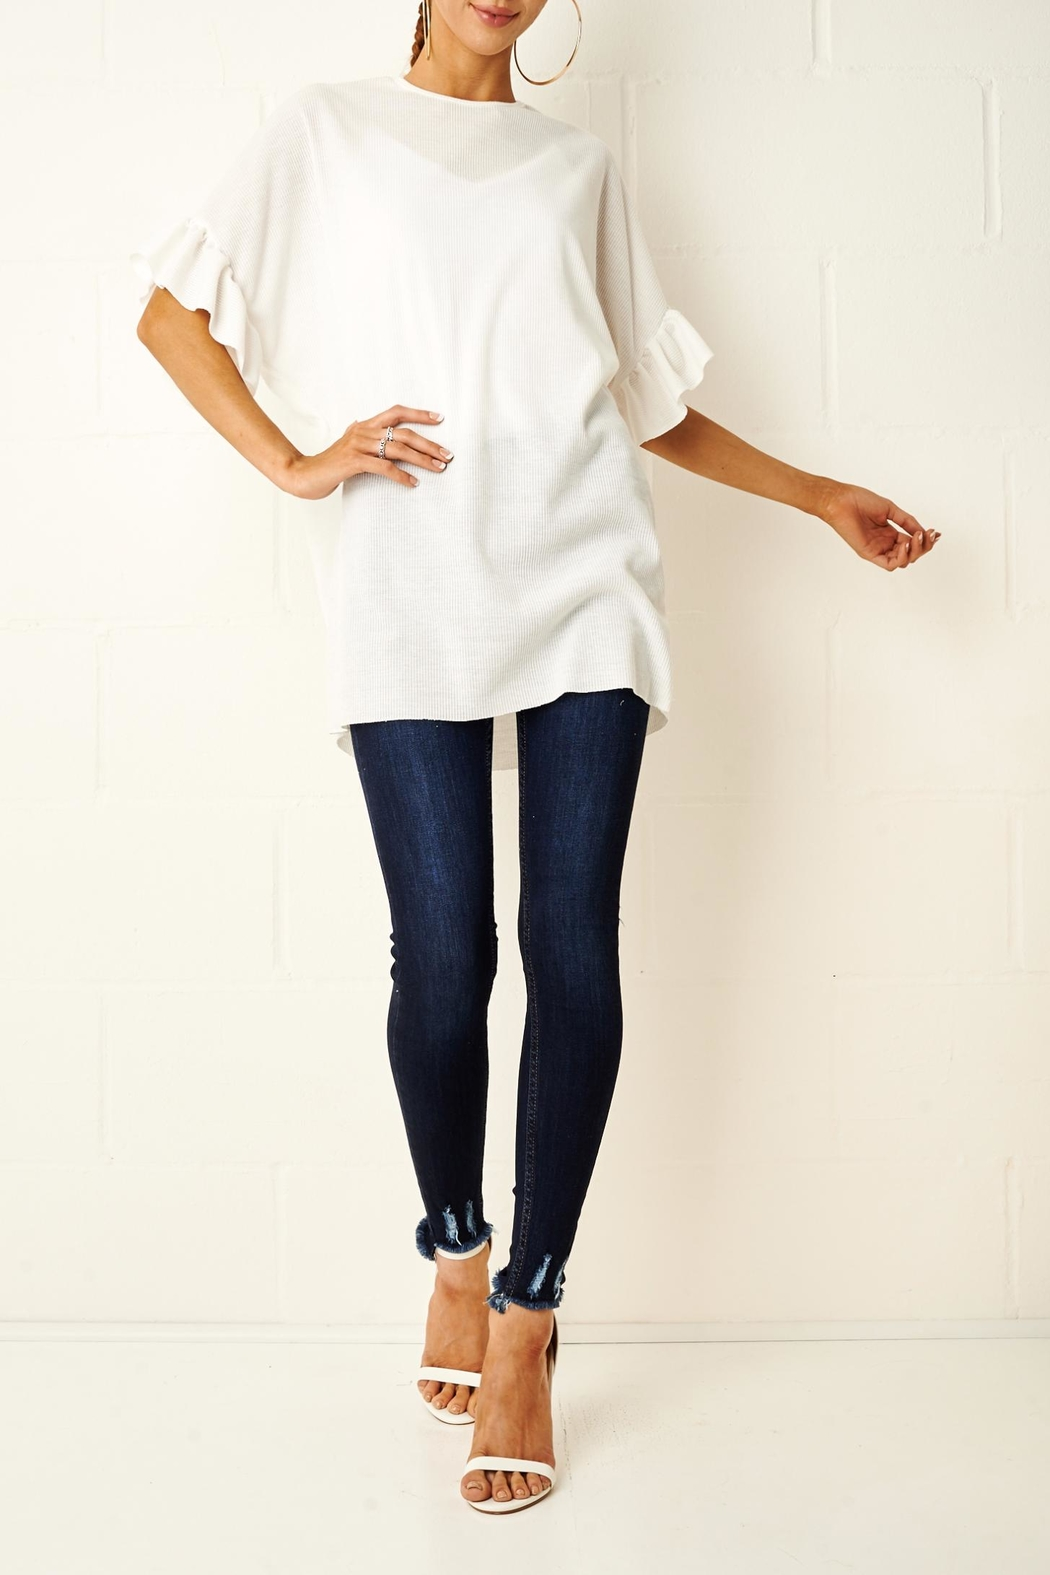 frontrow White Ruffle Top - Main Image